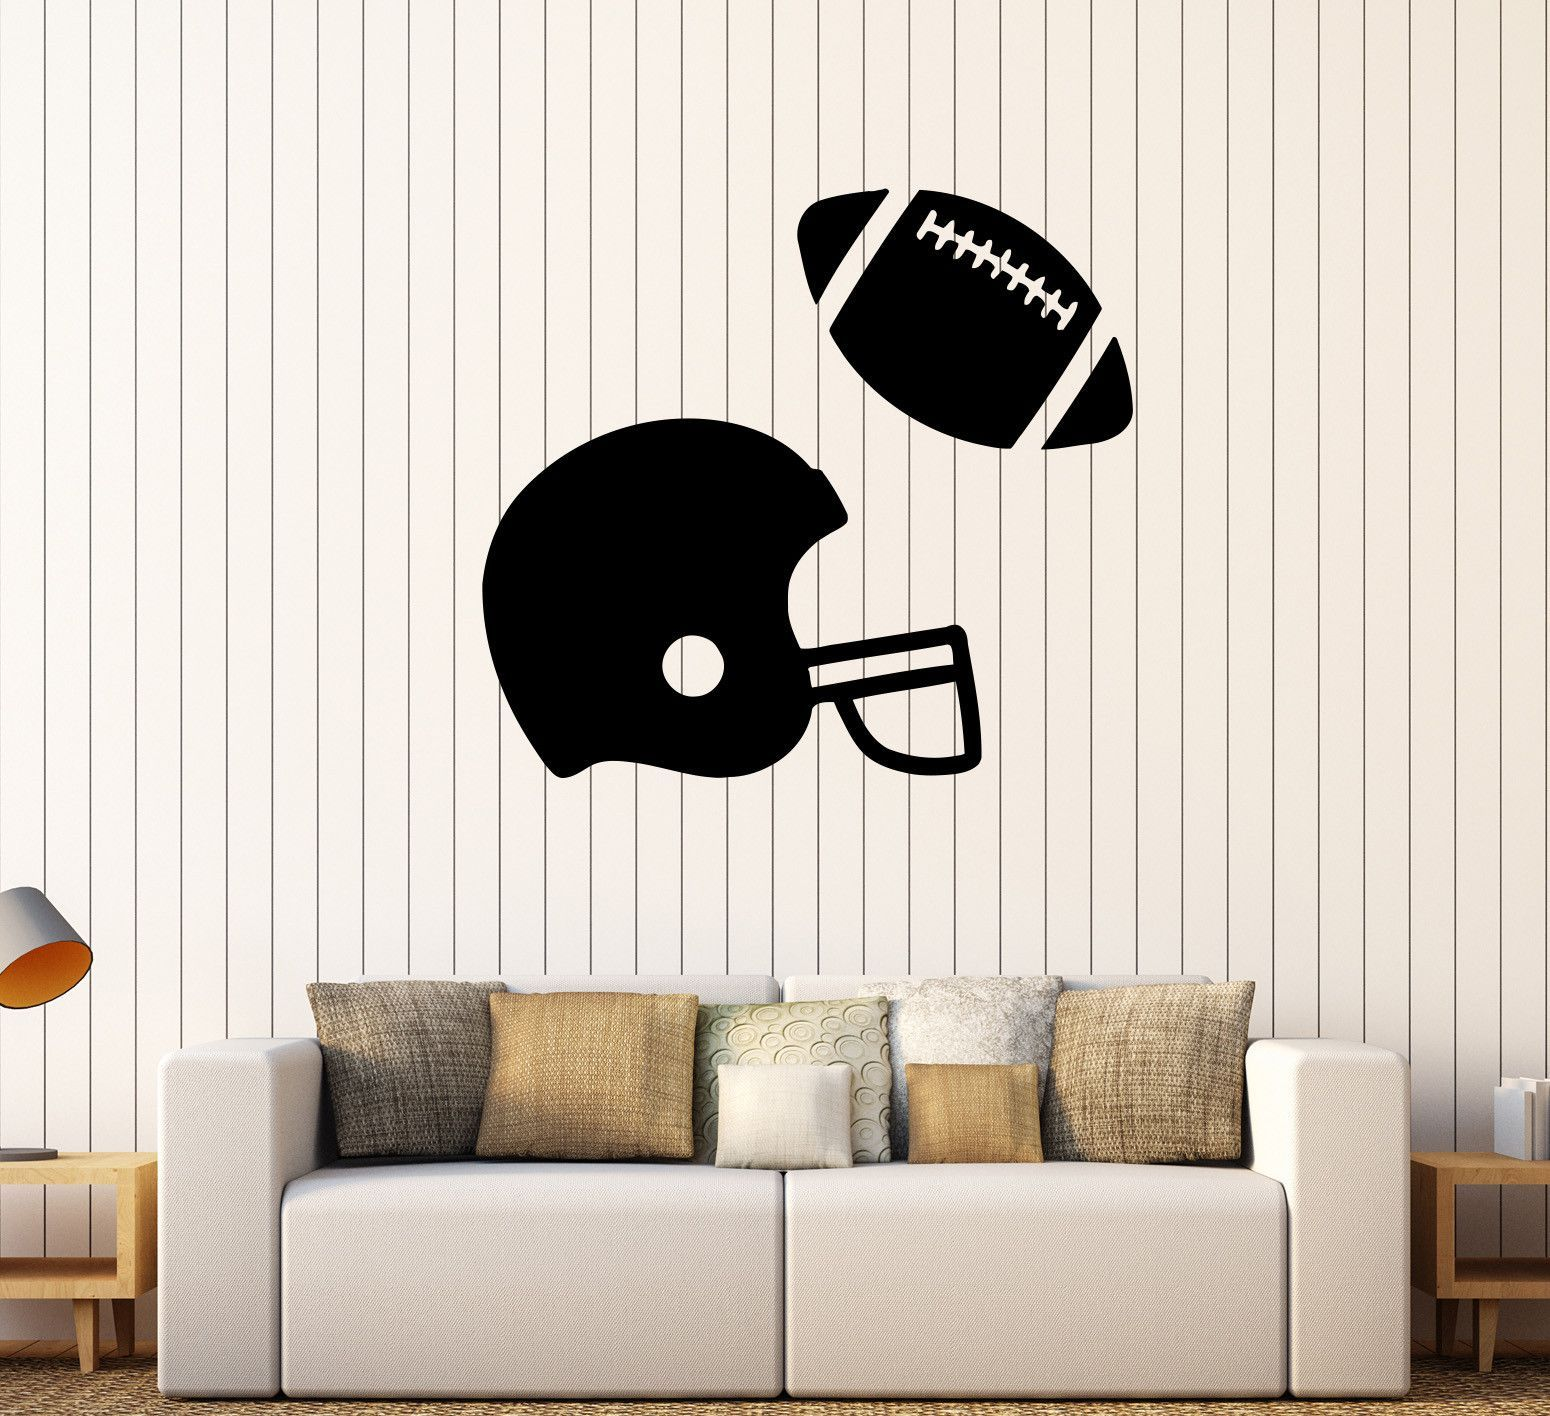 Our Vinyl Stickers Are Unique And One Of A Kind! We Make Our Wall Decals  Using Superior Quality Interi